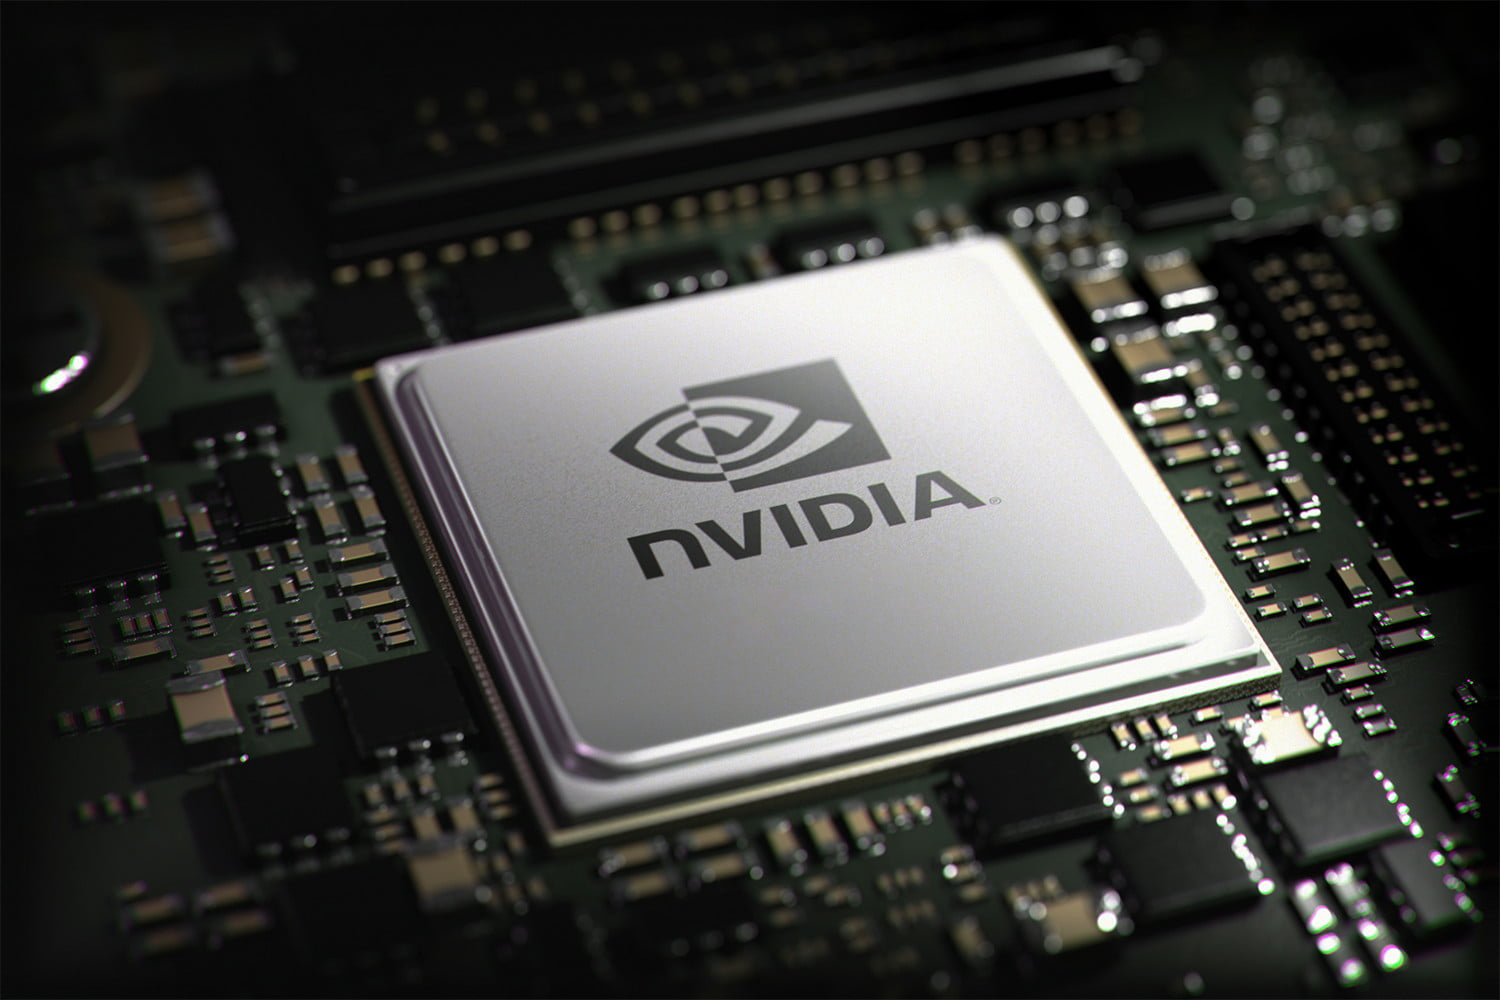 Nvidias Geforce Gtx 1050 Ti For Laptops Gets Benchmarked Digital Laptop Hard Drive On A Circuit Board Clock Awesome Combination Trends